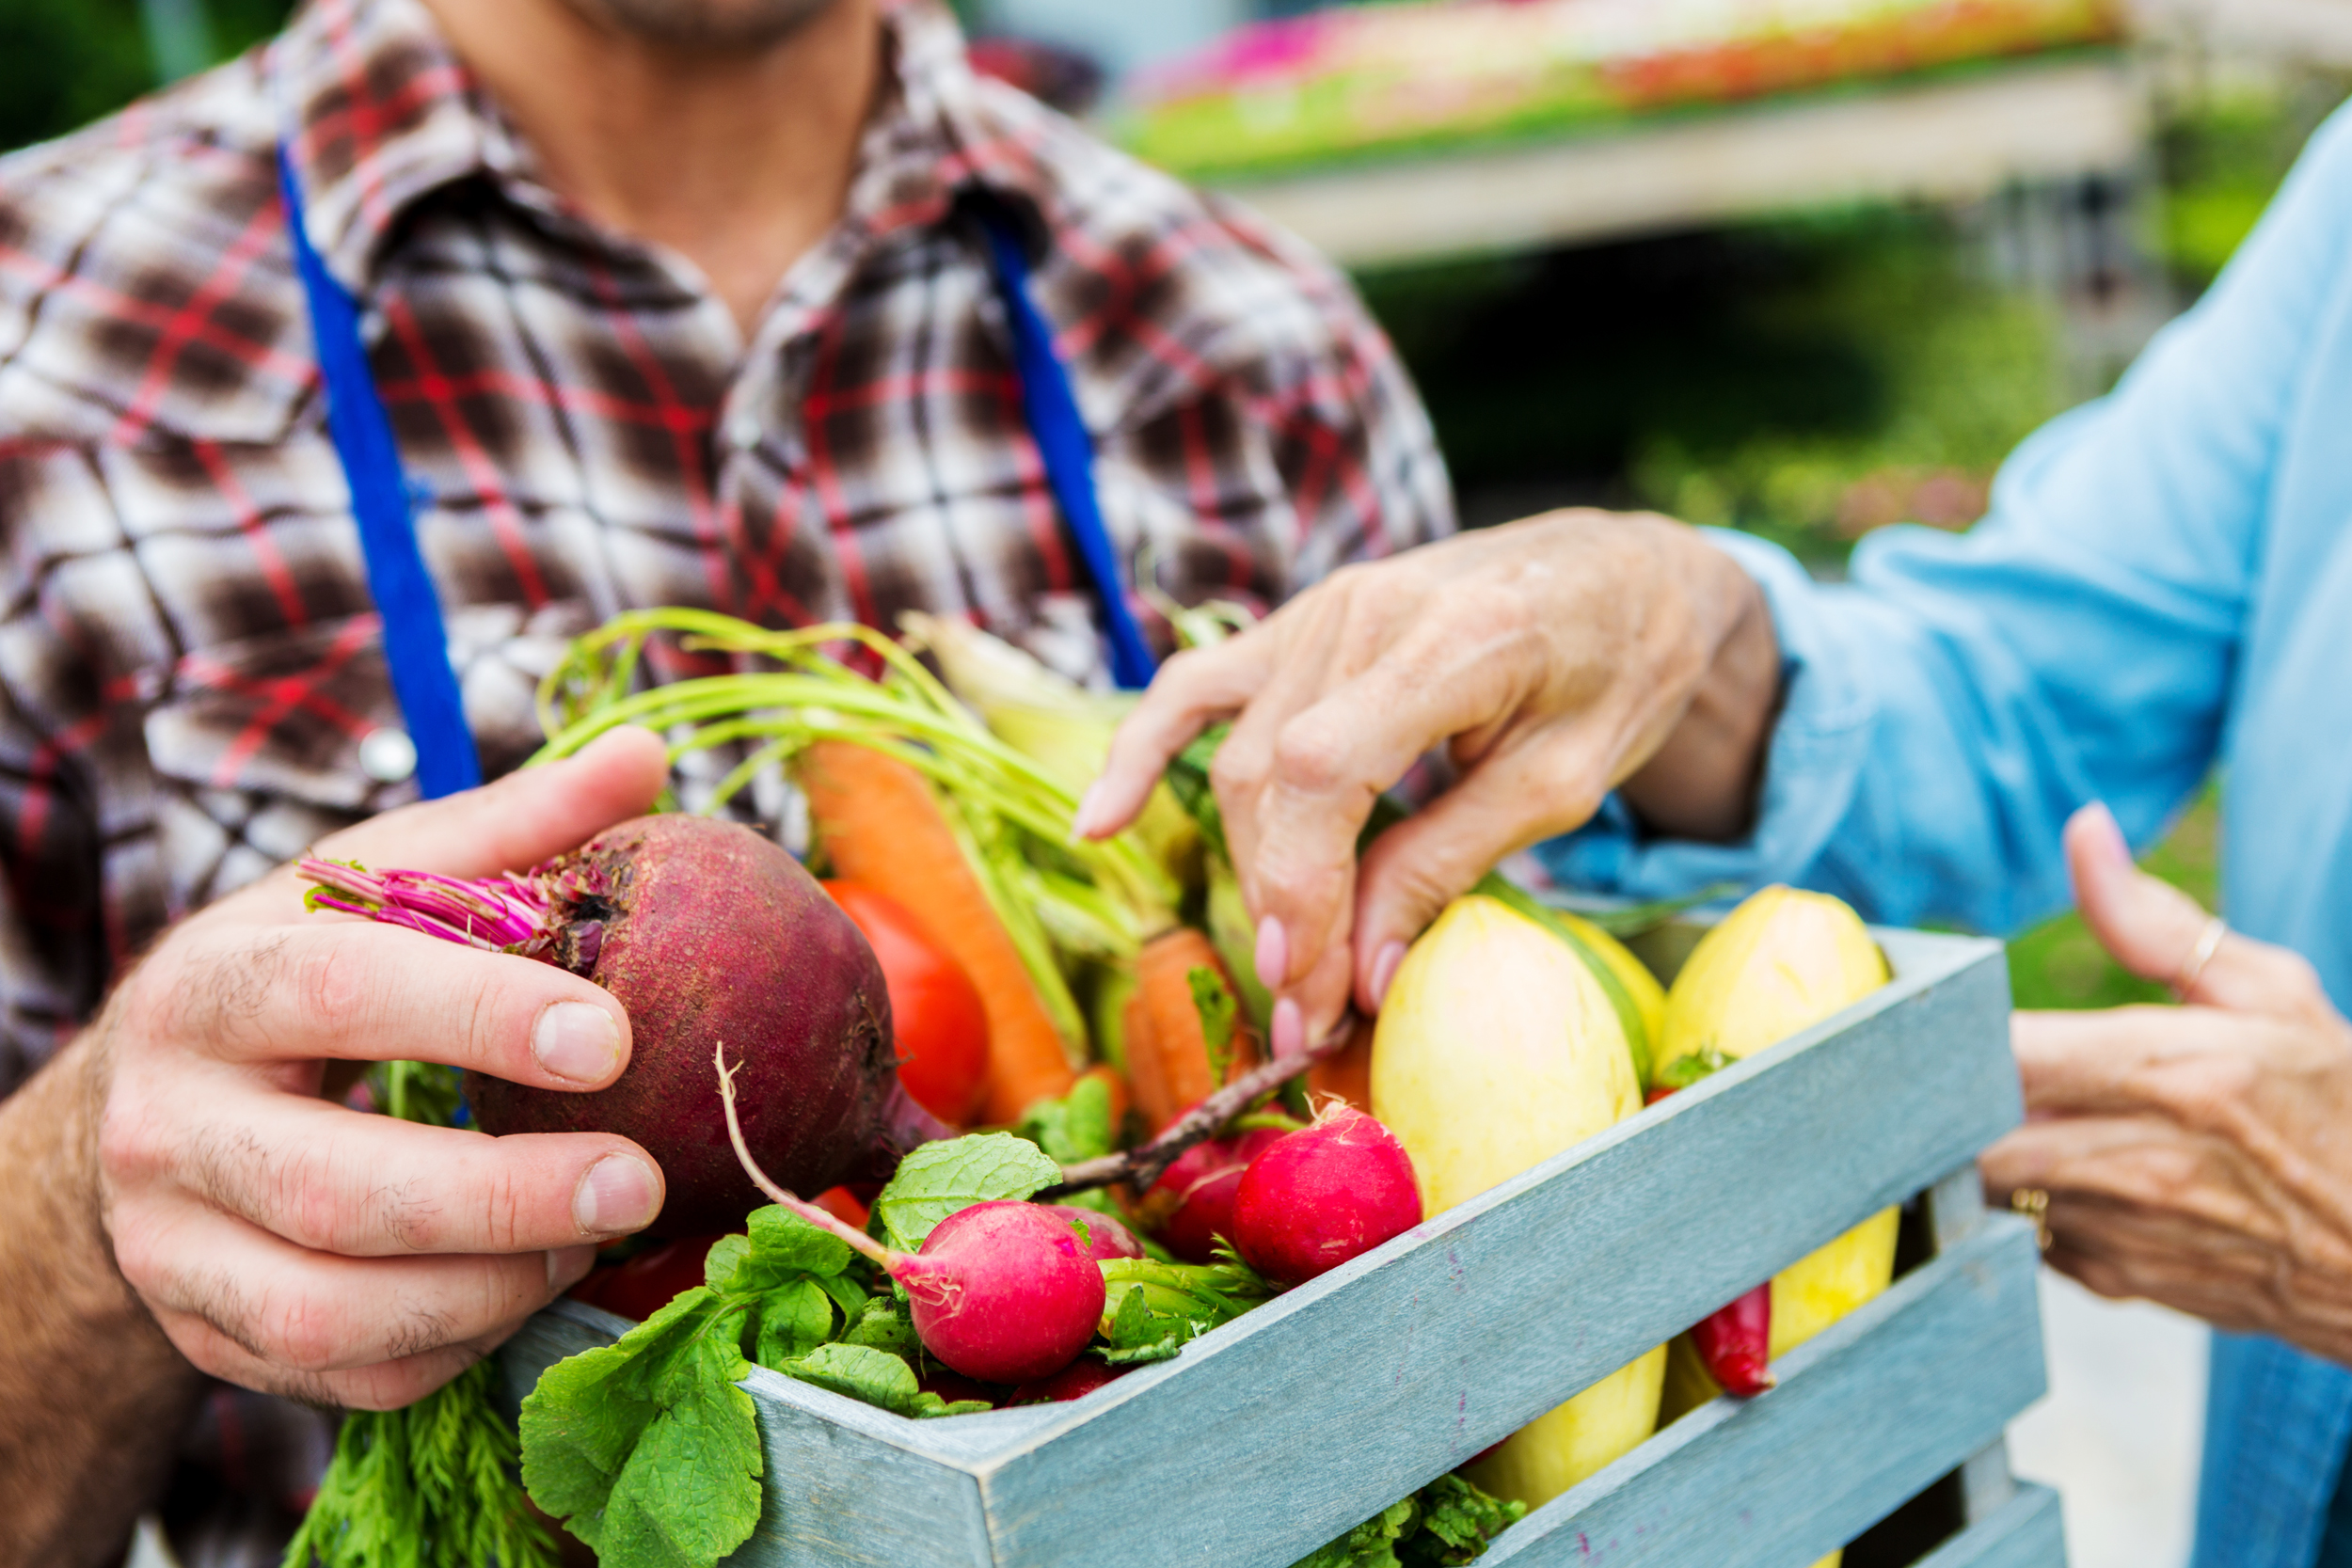 What a nutritionist wants you to know about pesticides and produce